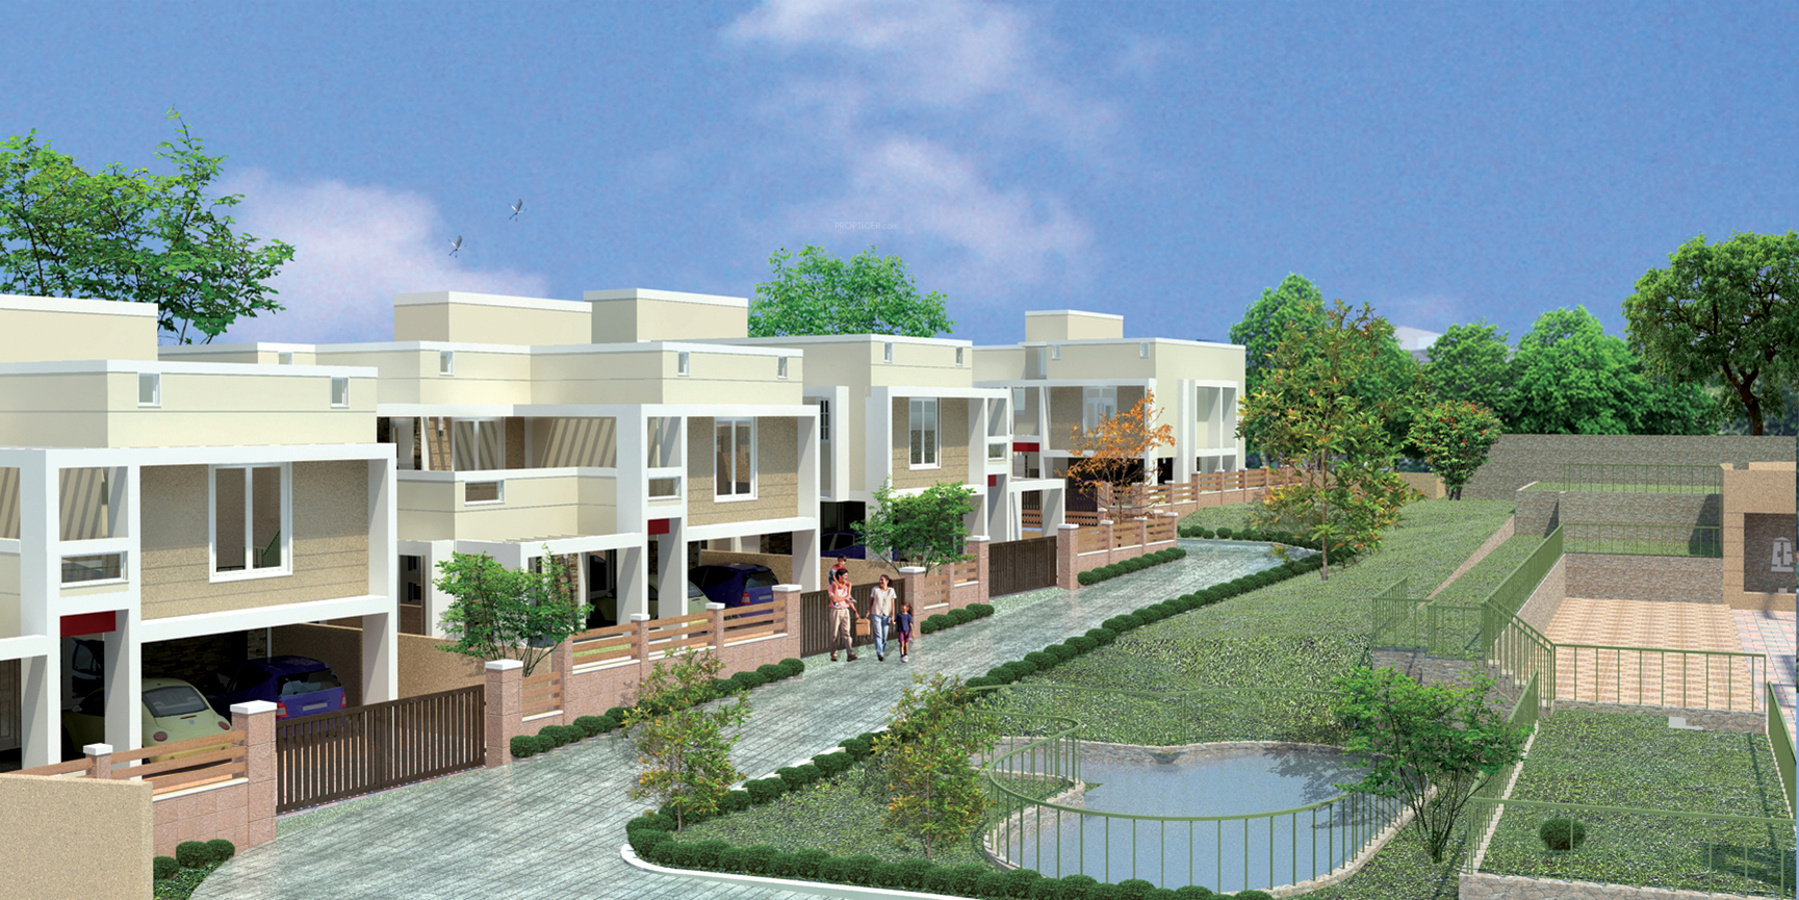 2491 Sq Ft 4 Bhk 4t Villa For Sale In Si Homes Bedford